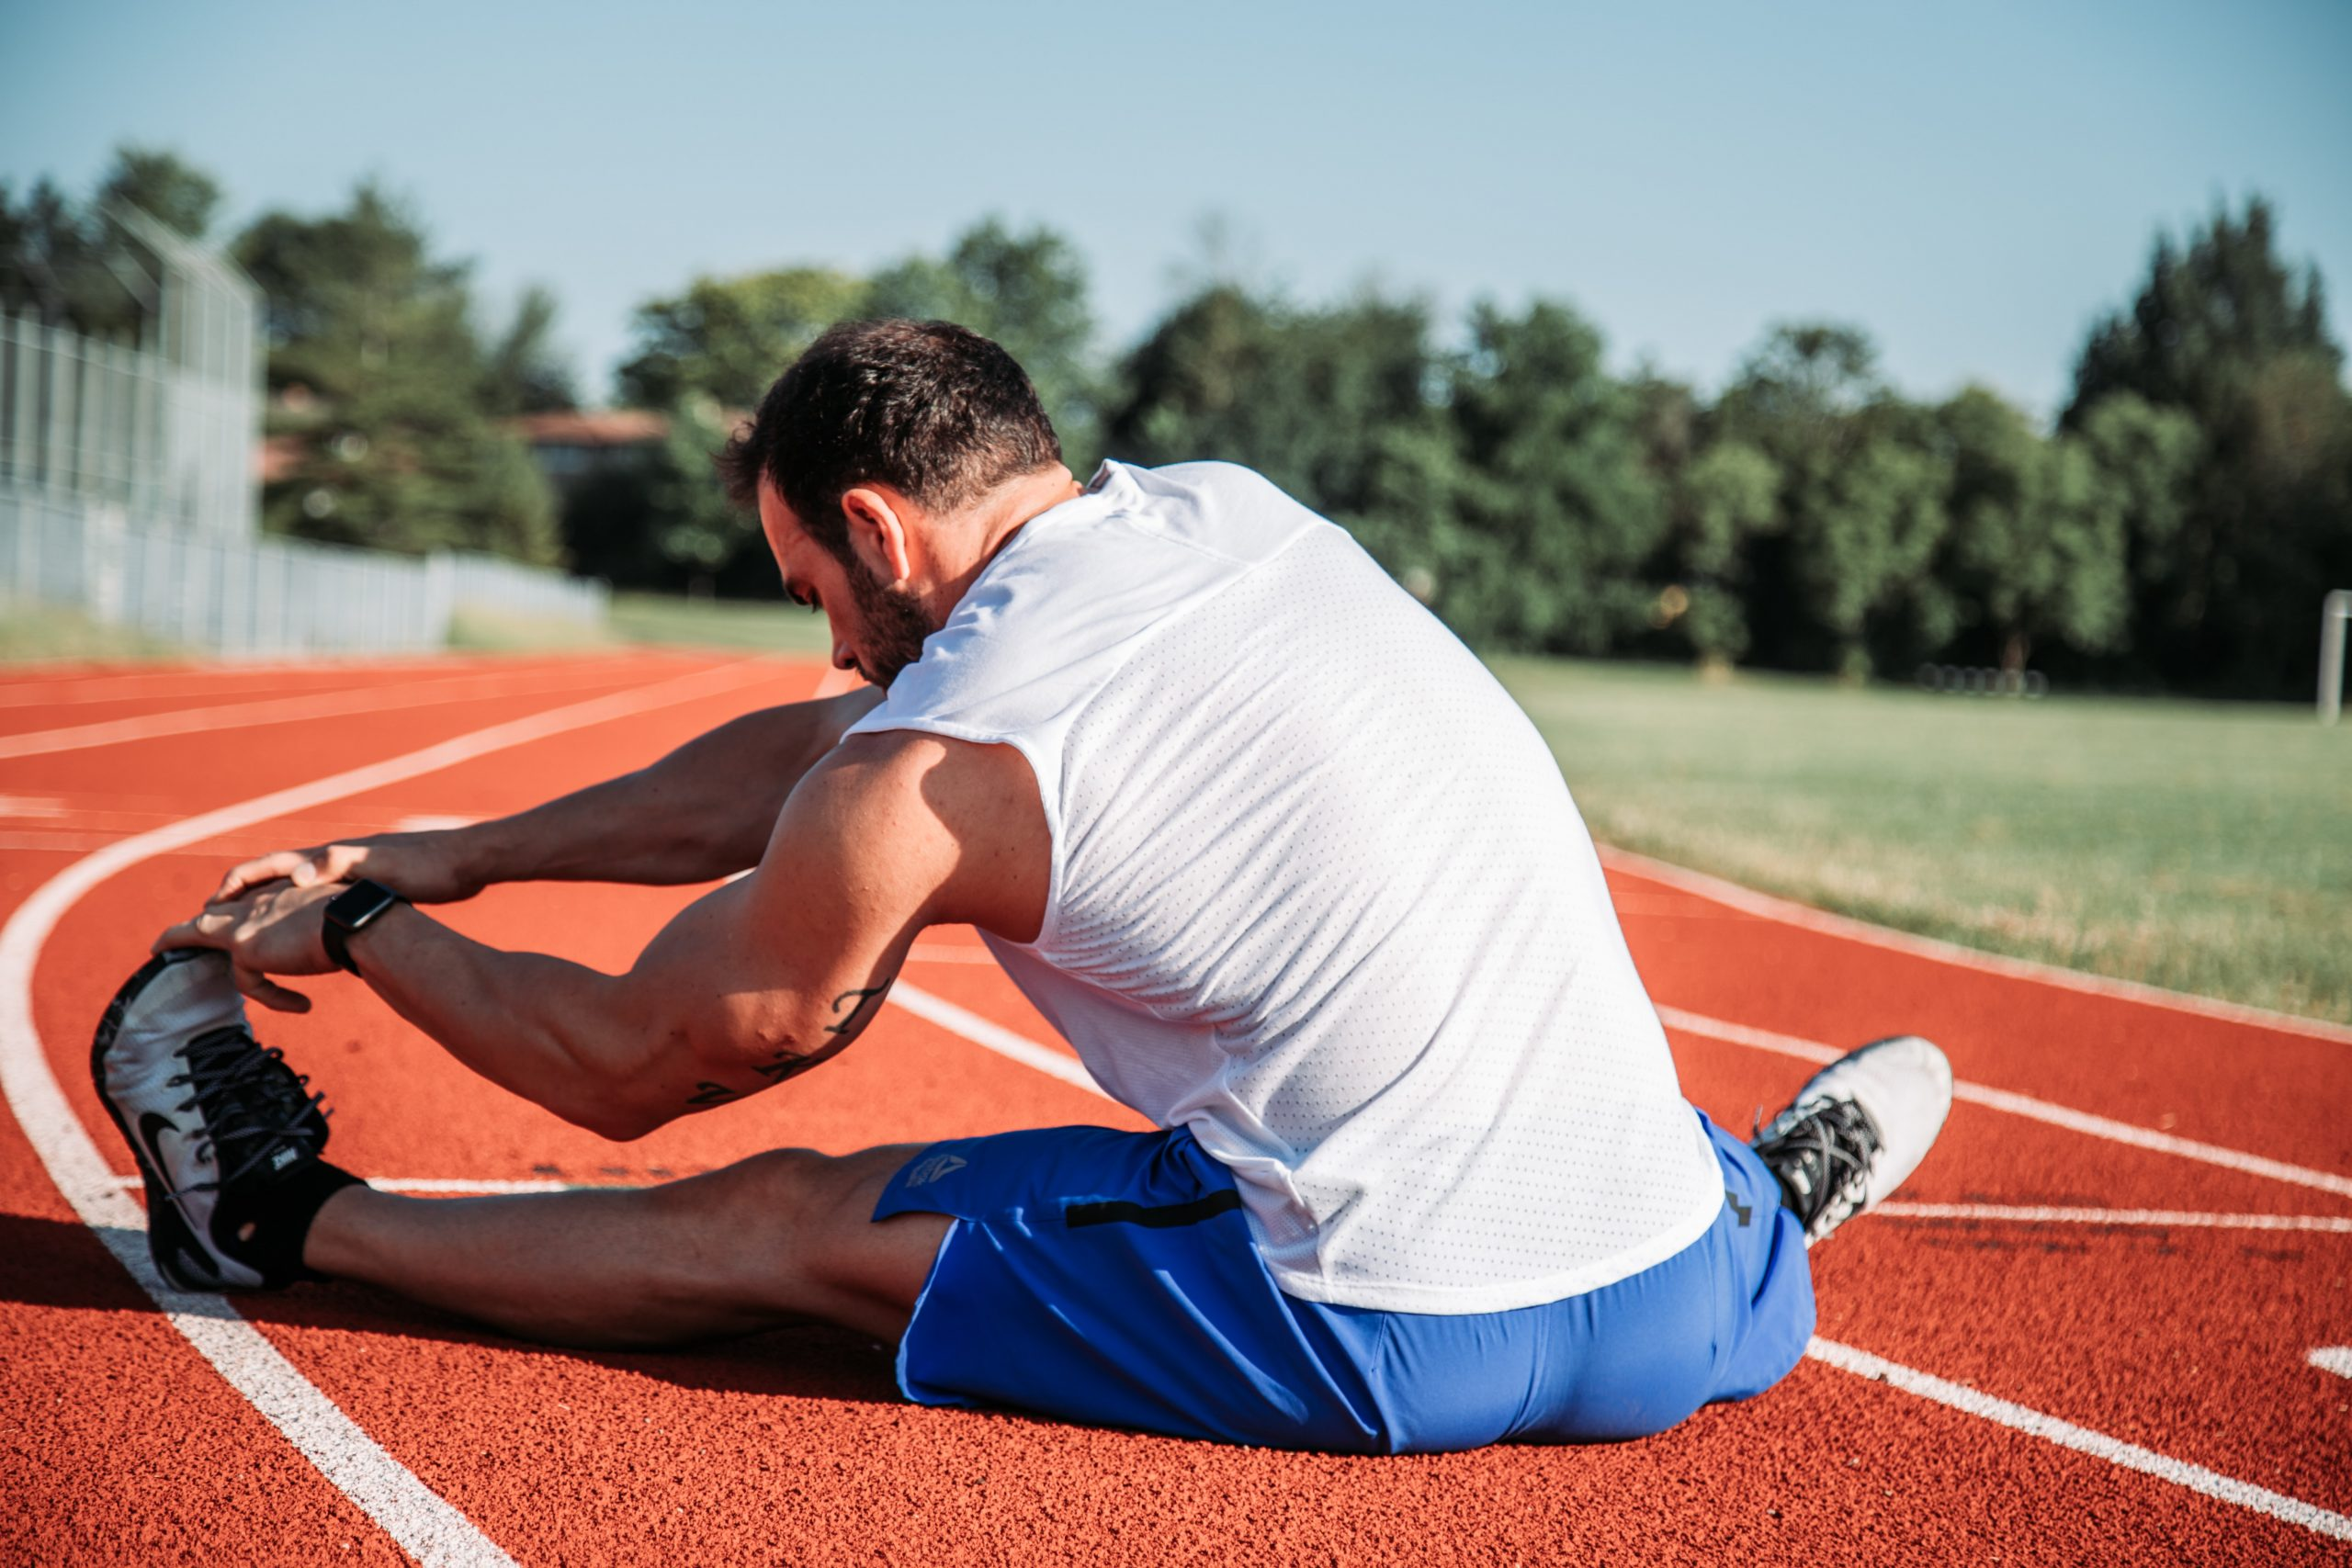 Guy stretching before sprint